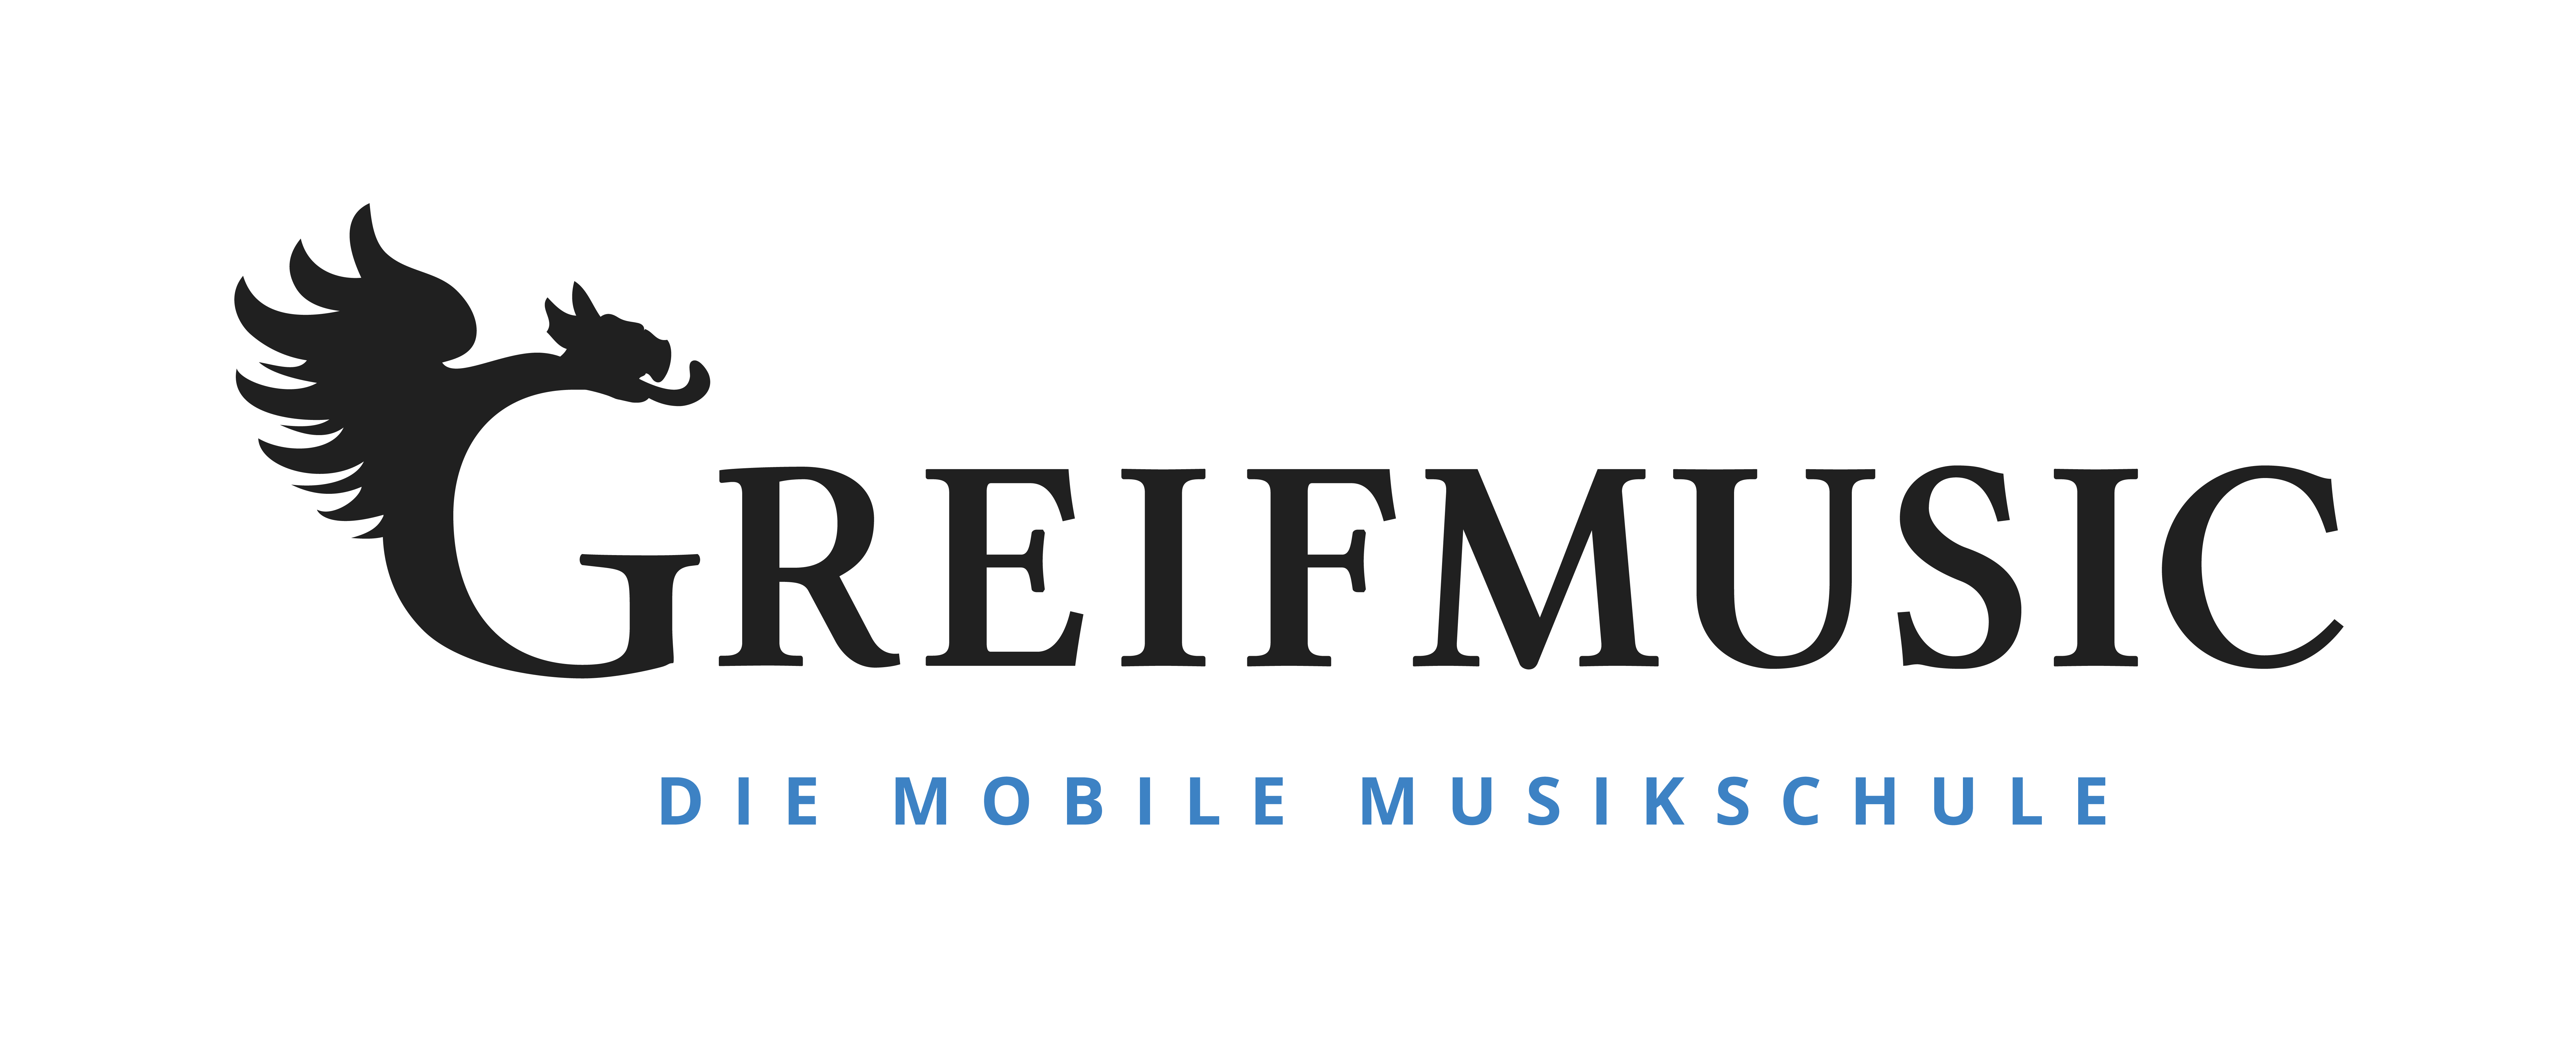 Greifmusic_Logo_Wortmarke_2016_v1-08